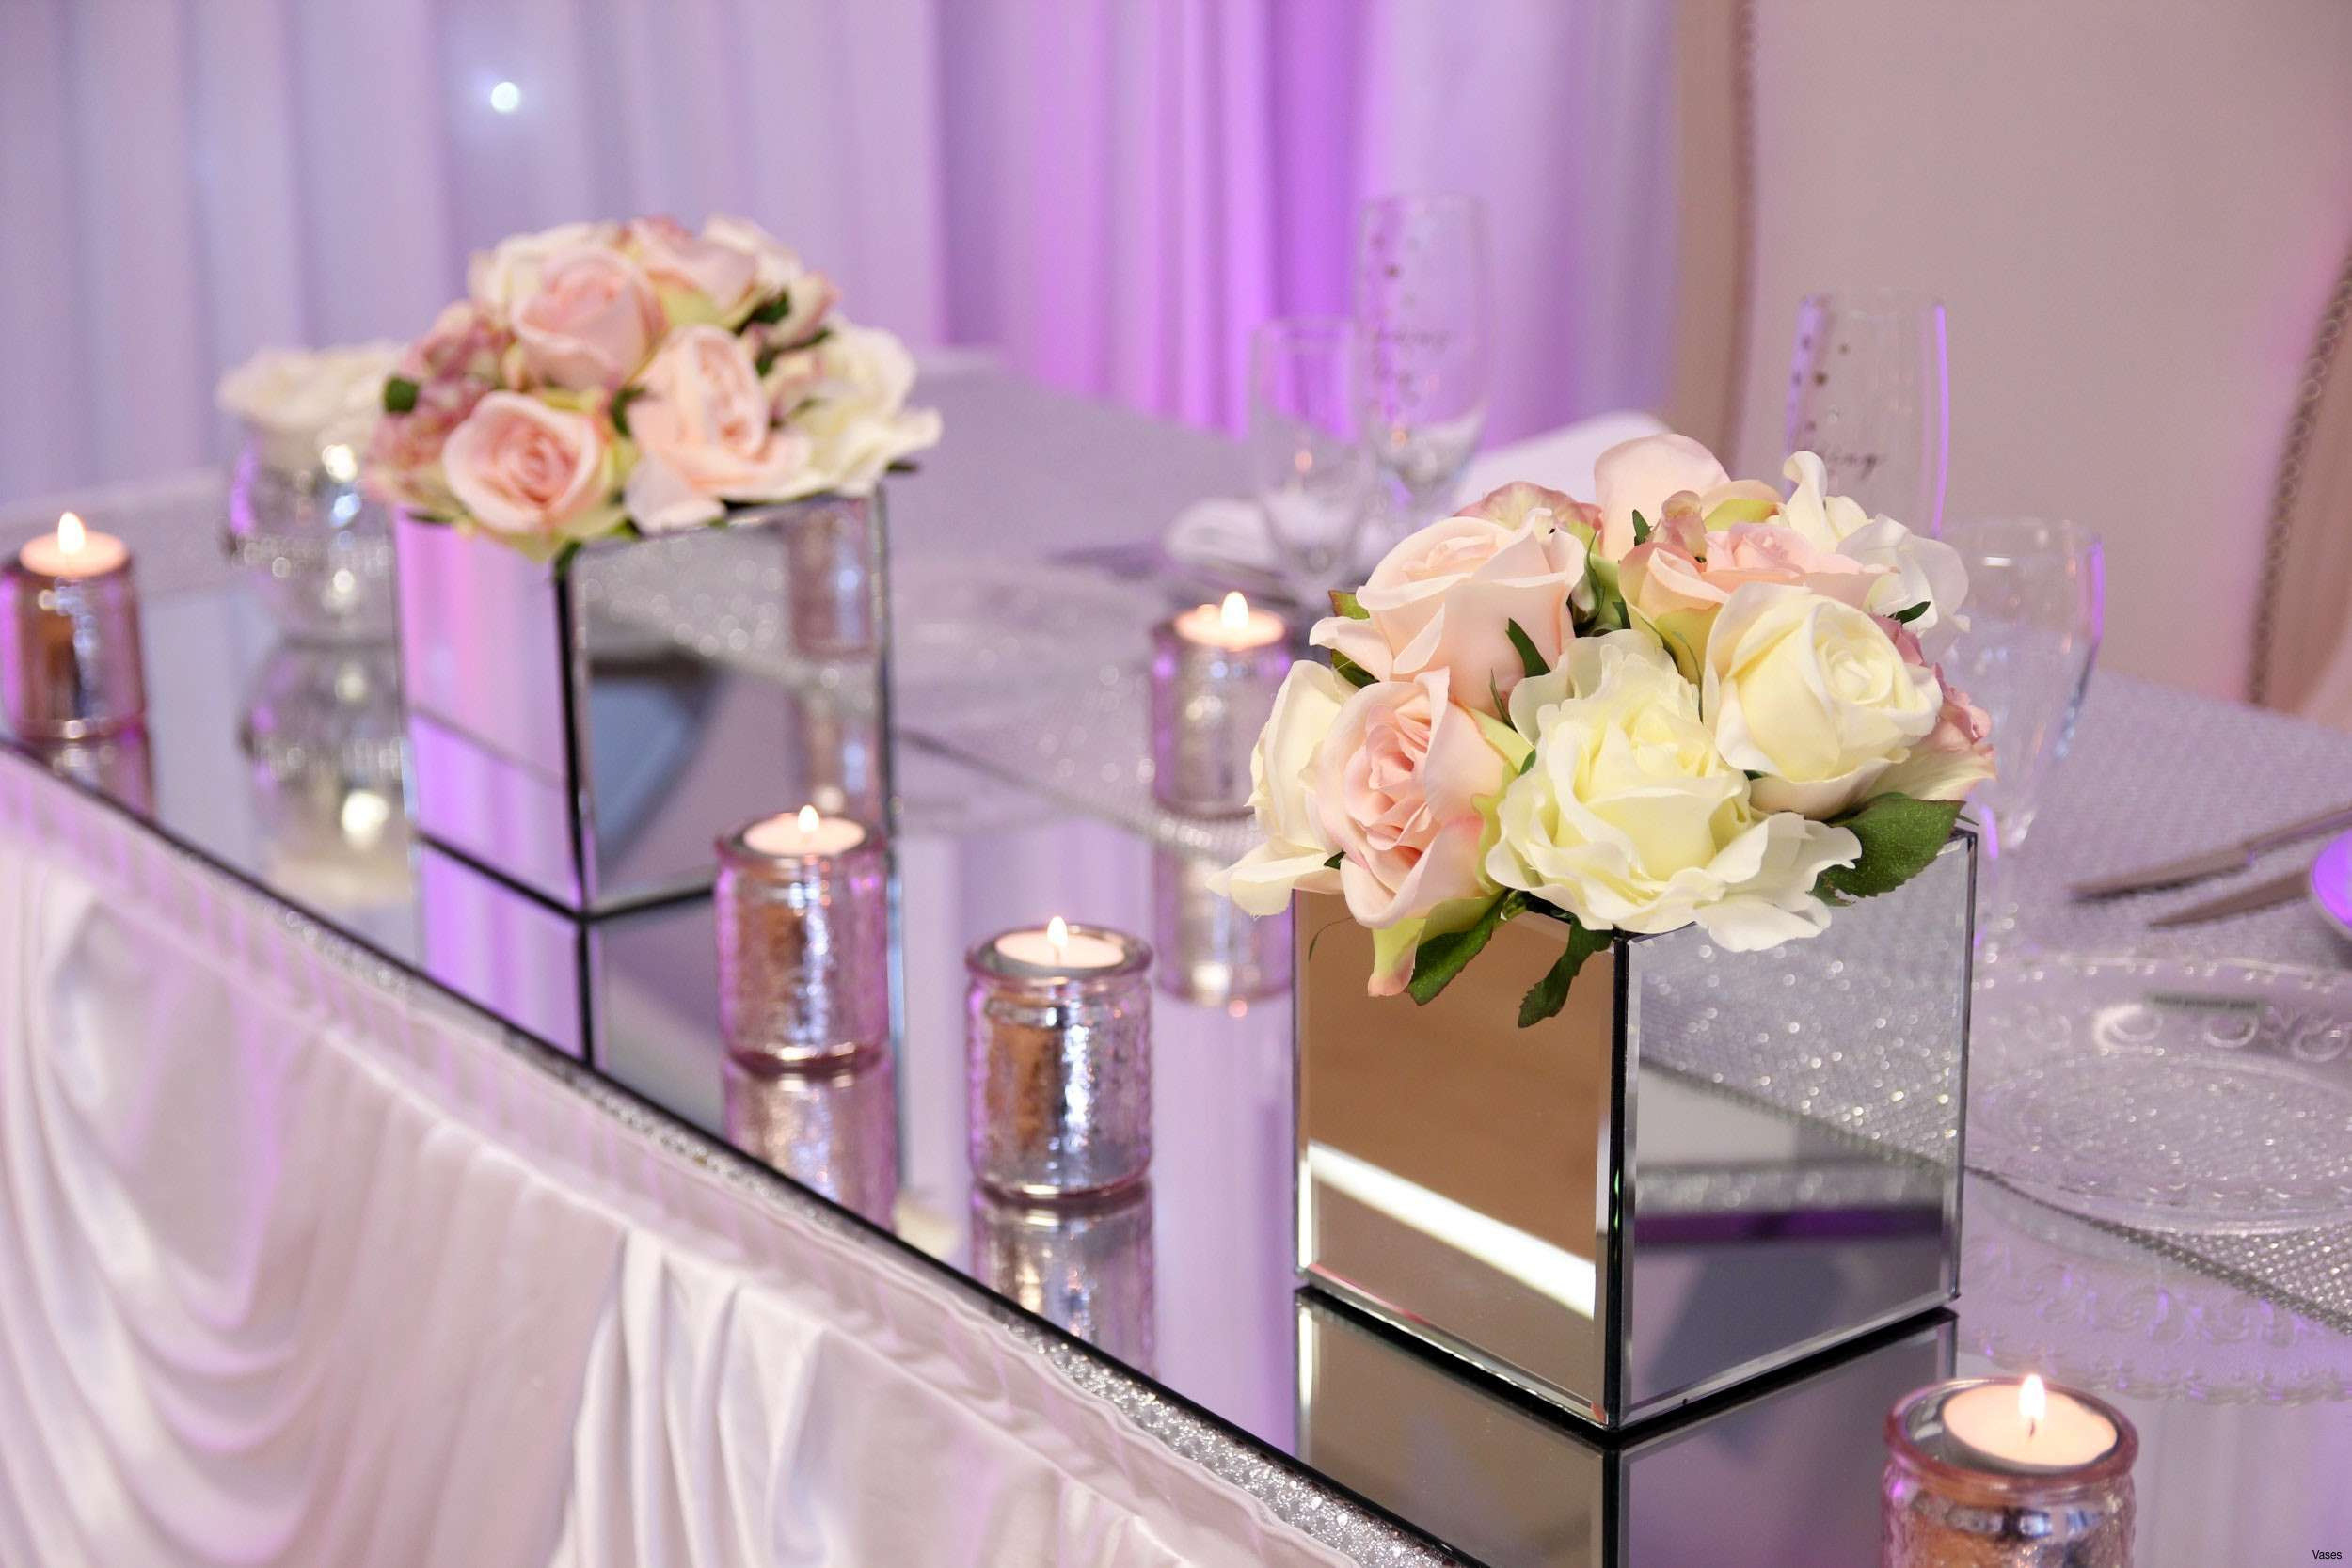 4 inch vase of gold shimmer tablecloth elegant mirrored square vase 3h vases mirror throughout gold shimmer tablecloth elegant mirrored square vase 3h vases mirror table decorationi 0d weddings